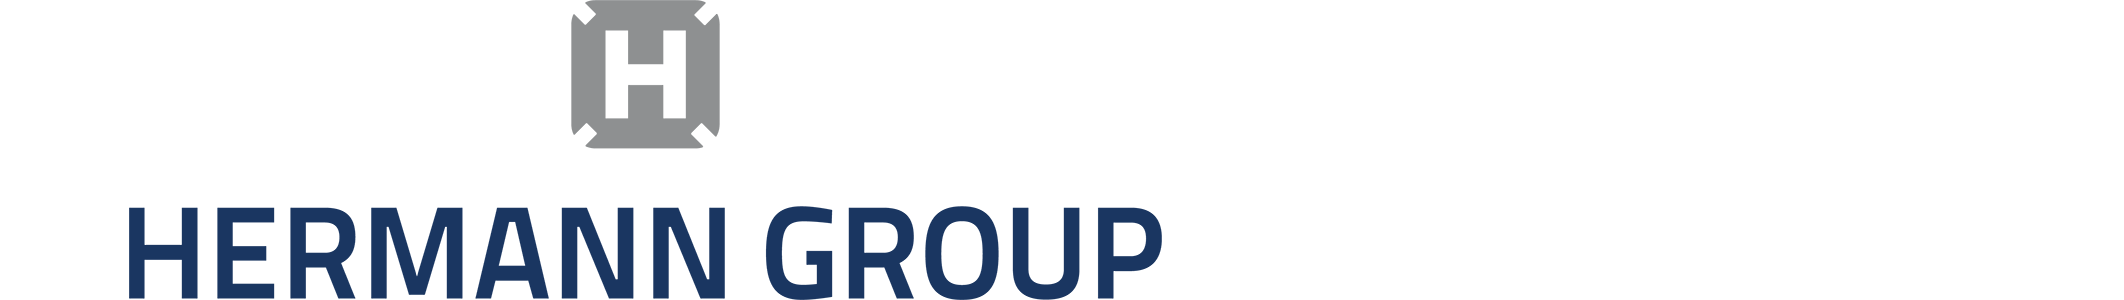 Hermann Group